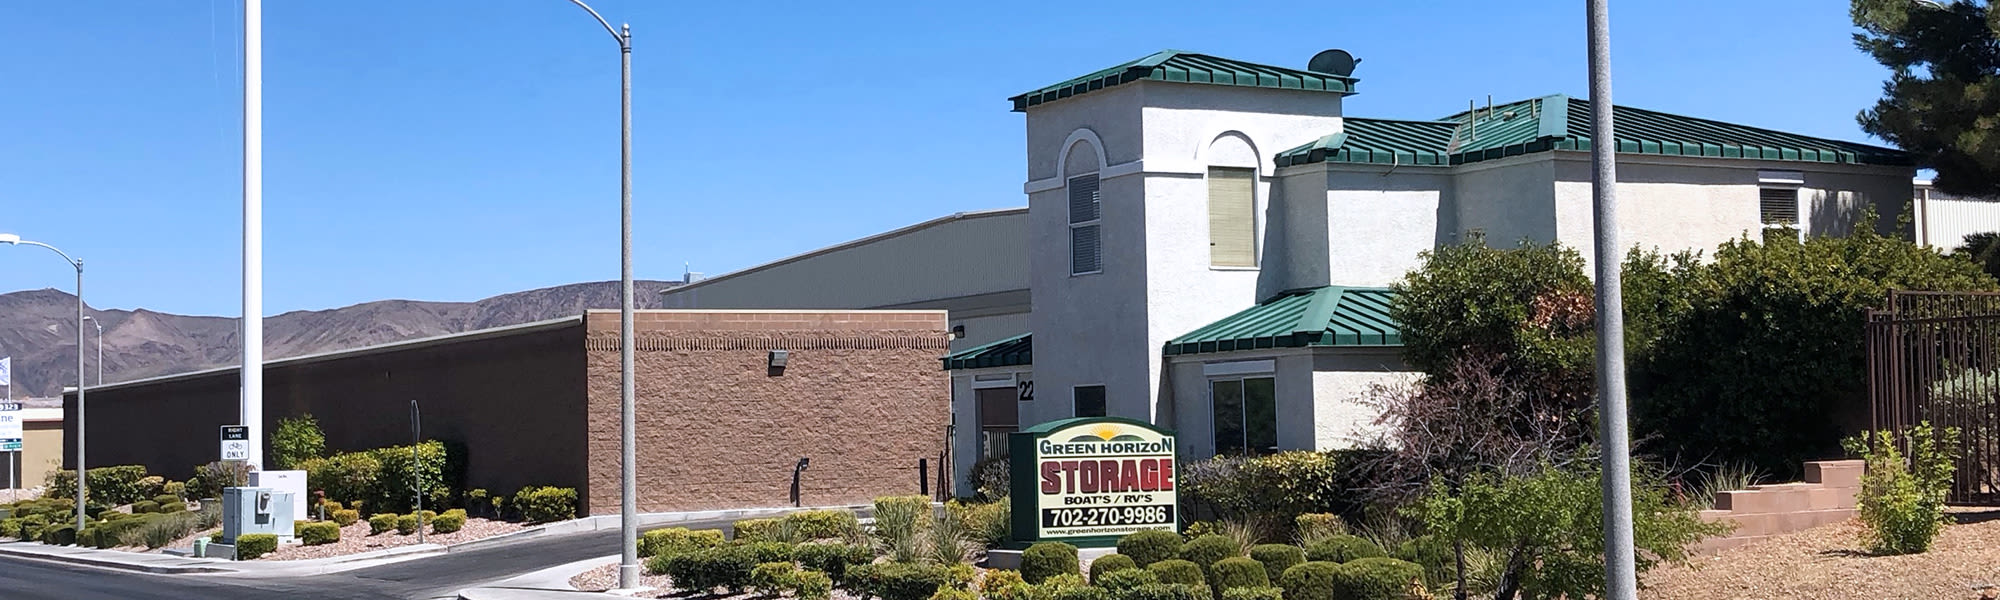 Self storage in Henderson, NV